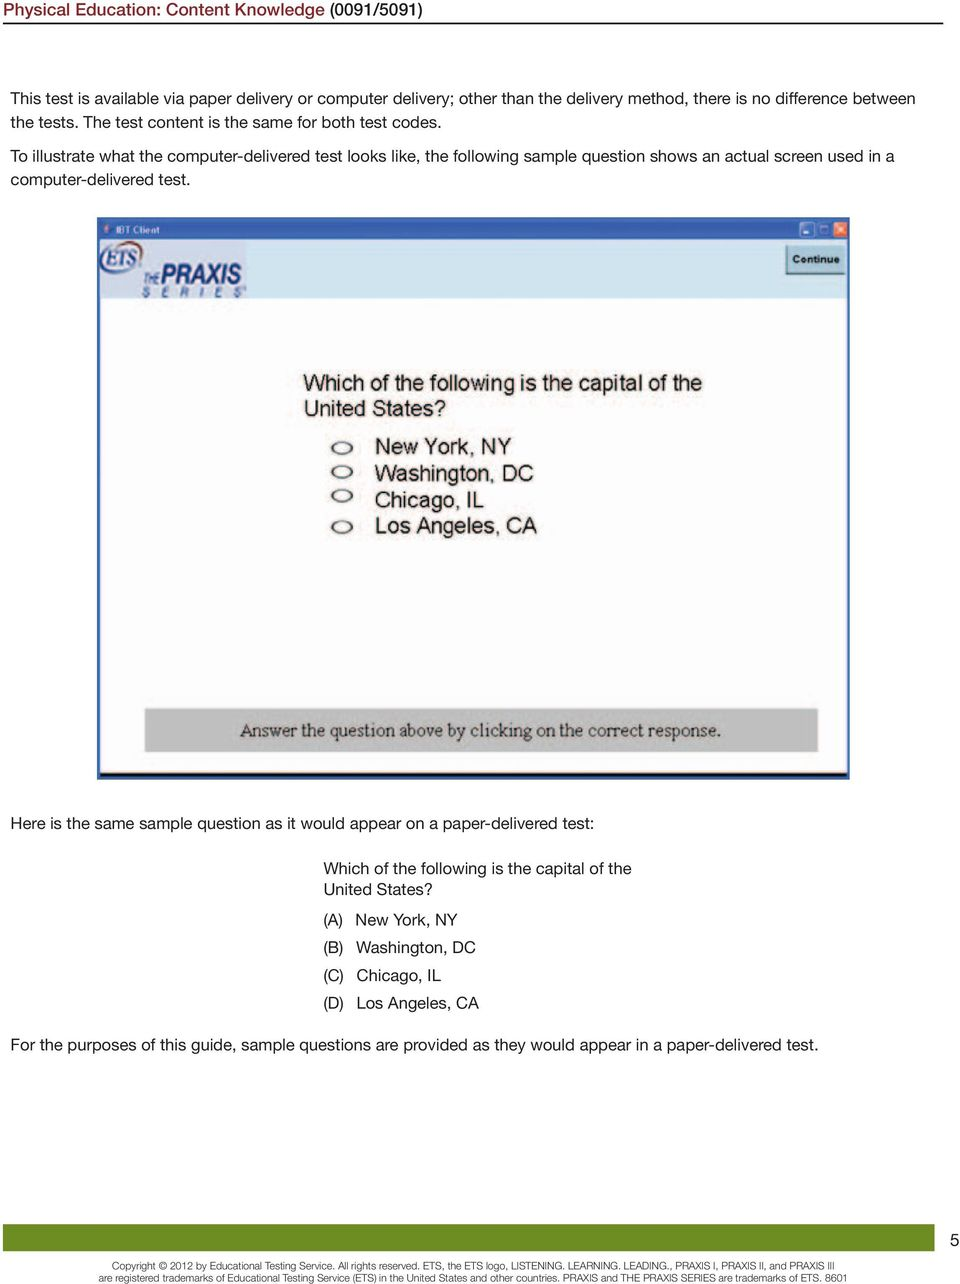 To illustrate what the computer-delivered test looks like, the following sample  question shows